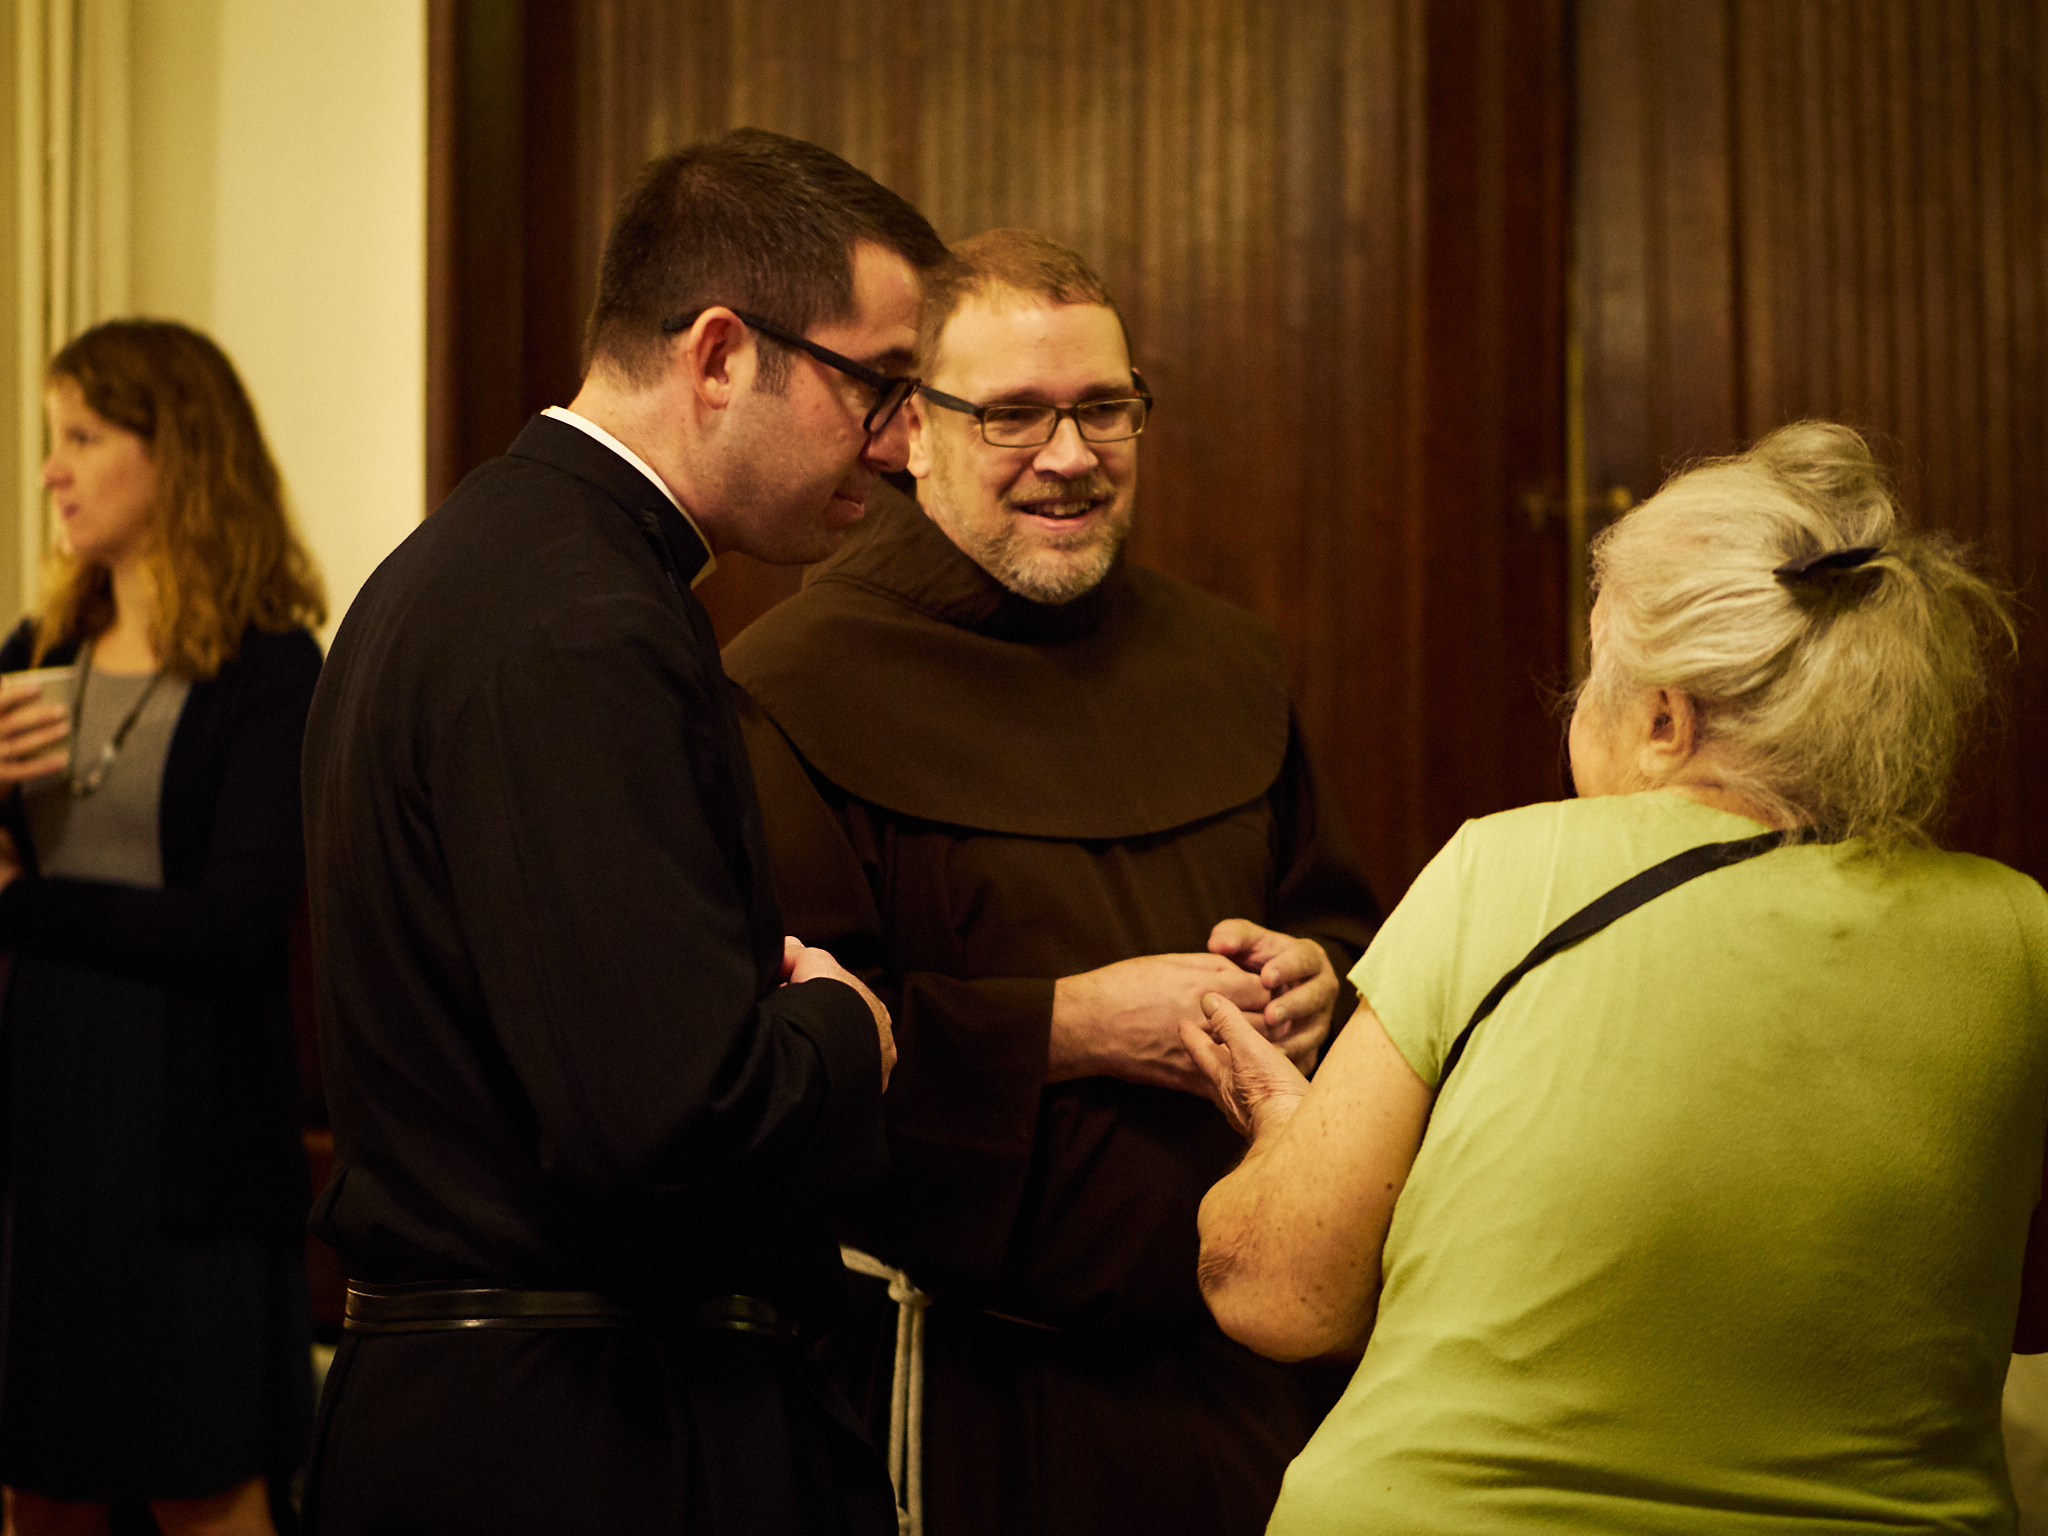 At coffee hour: Fr. Matt Jacobson (L) and Br. Damien Joseph, S.S.F, greet members of the congregation.   Photo by Ricardo Gomez